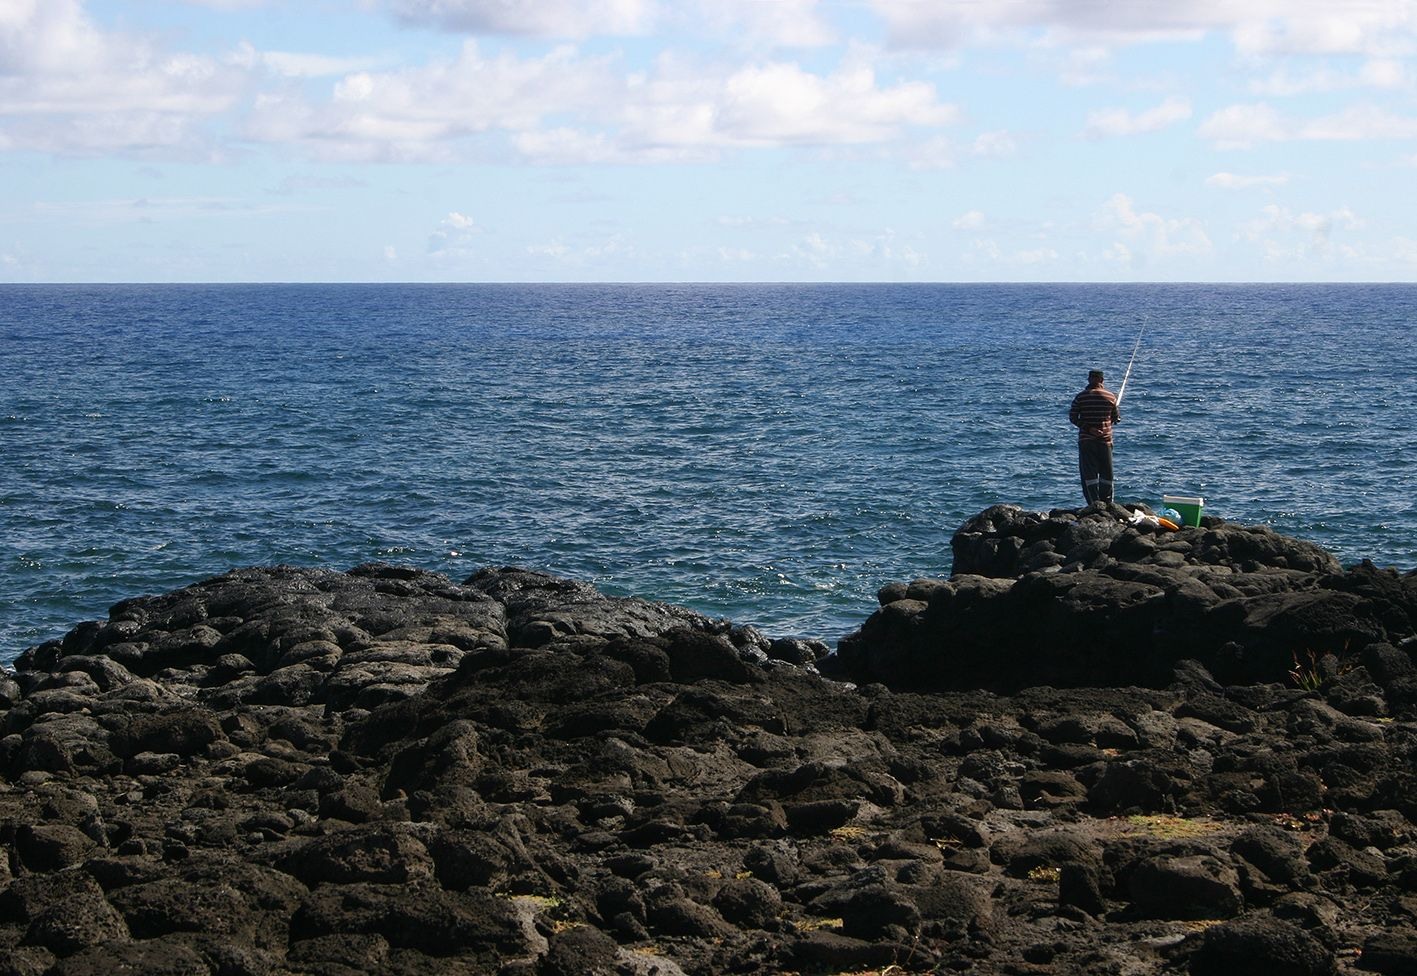 Rapa Nui / Easter Island / Isla de Pascua. Man fishing on the northeast coast. Photo: Mike Seager Thomas, UCL Rapa Nui Landscapes of Construction Project. You are welcome to use/ circulate the photo but please credit it to the project